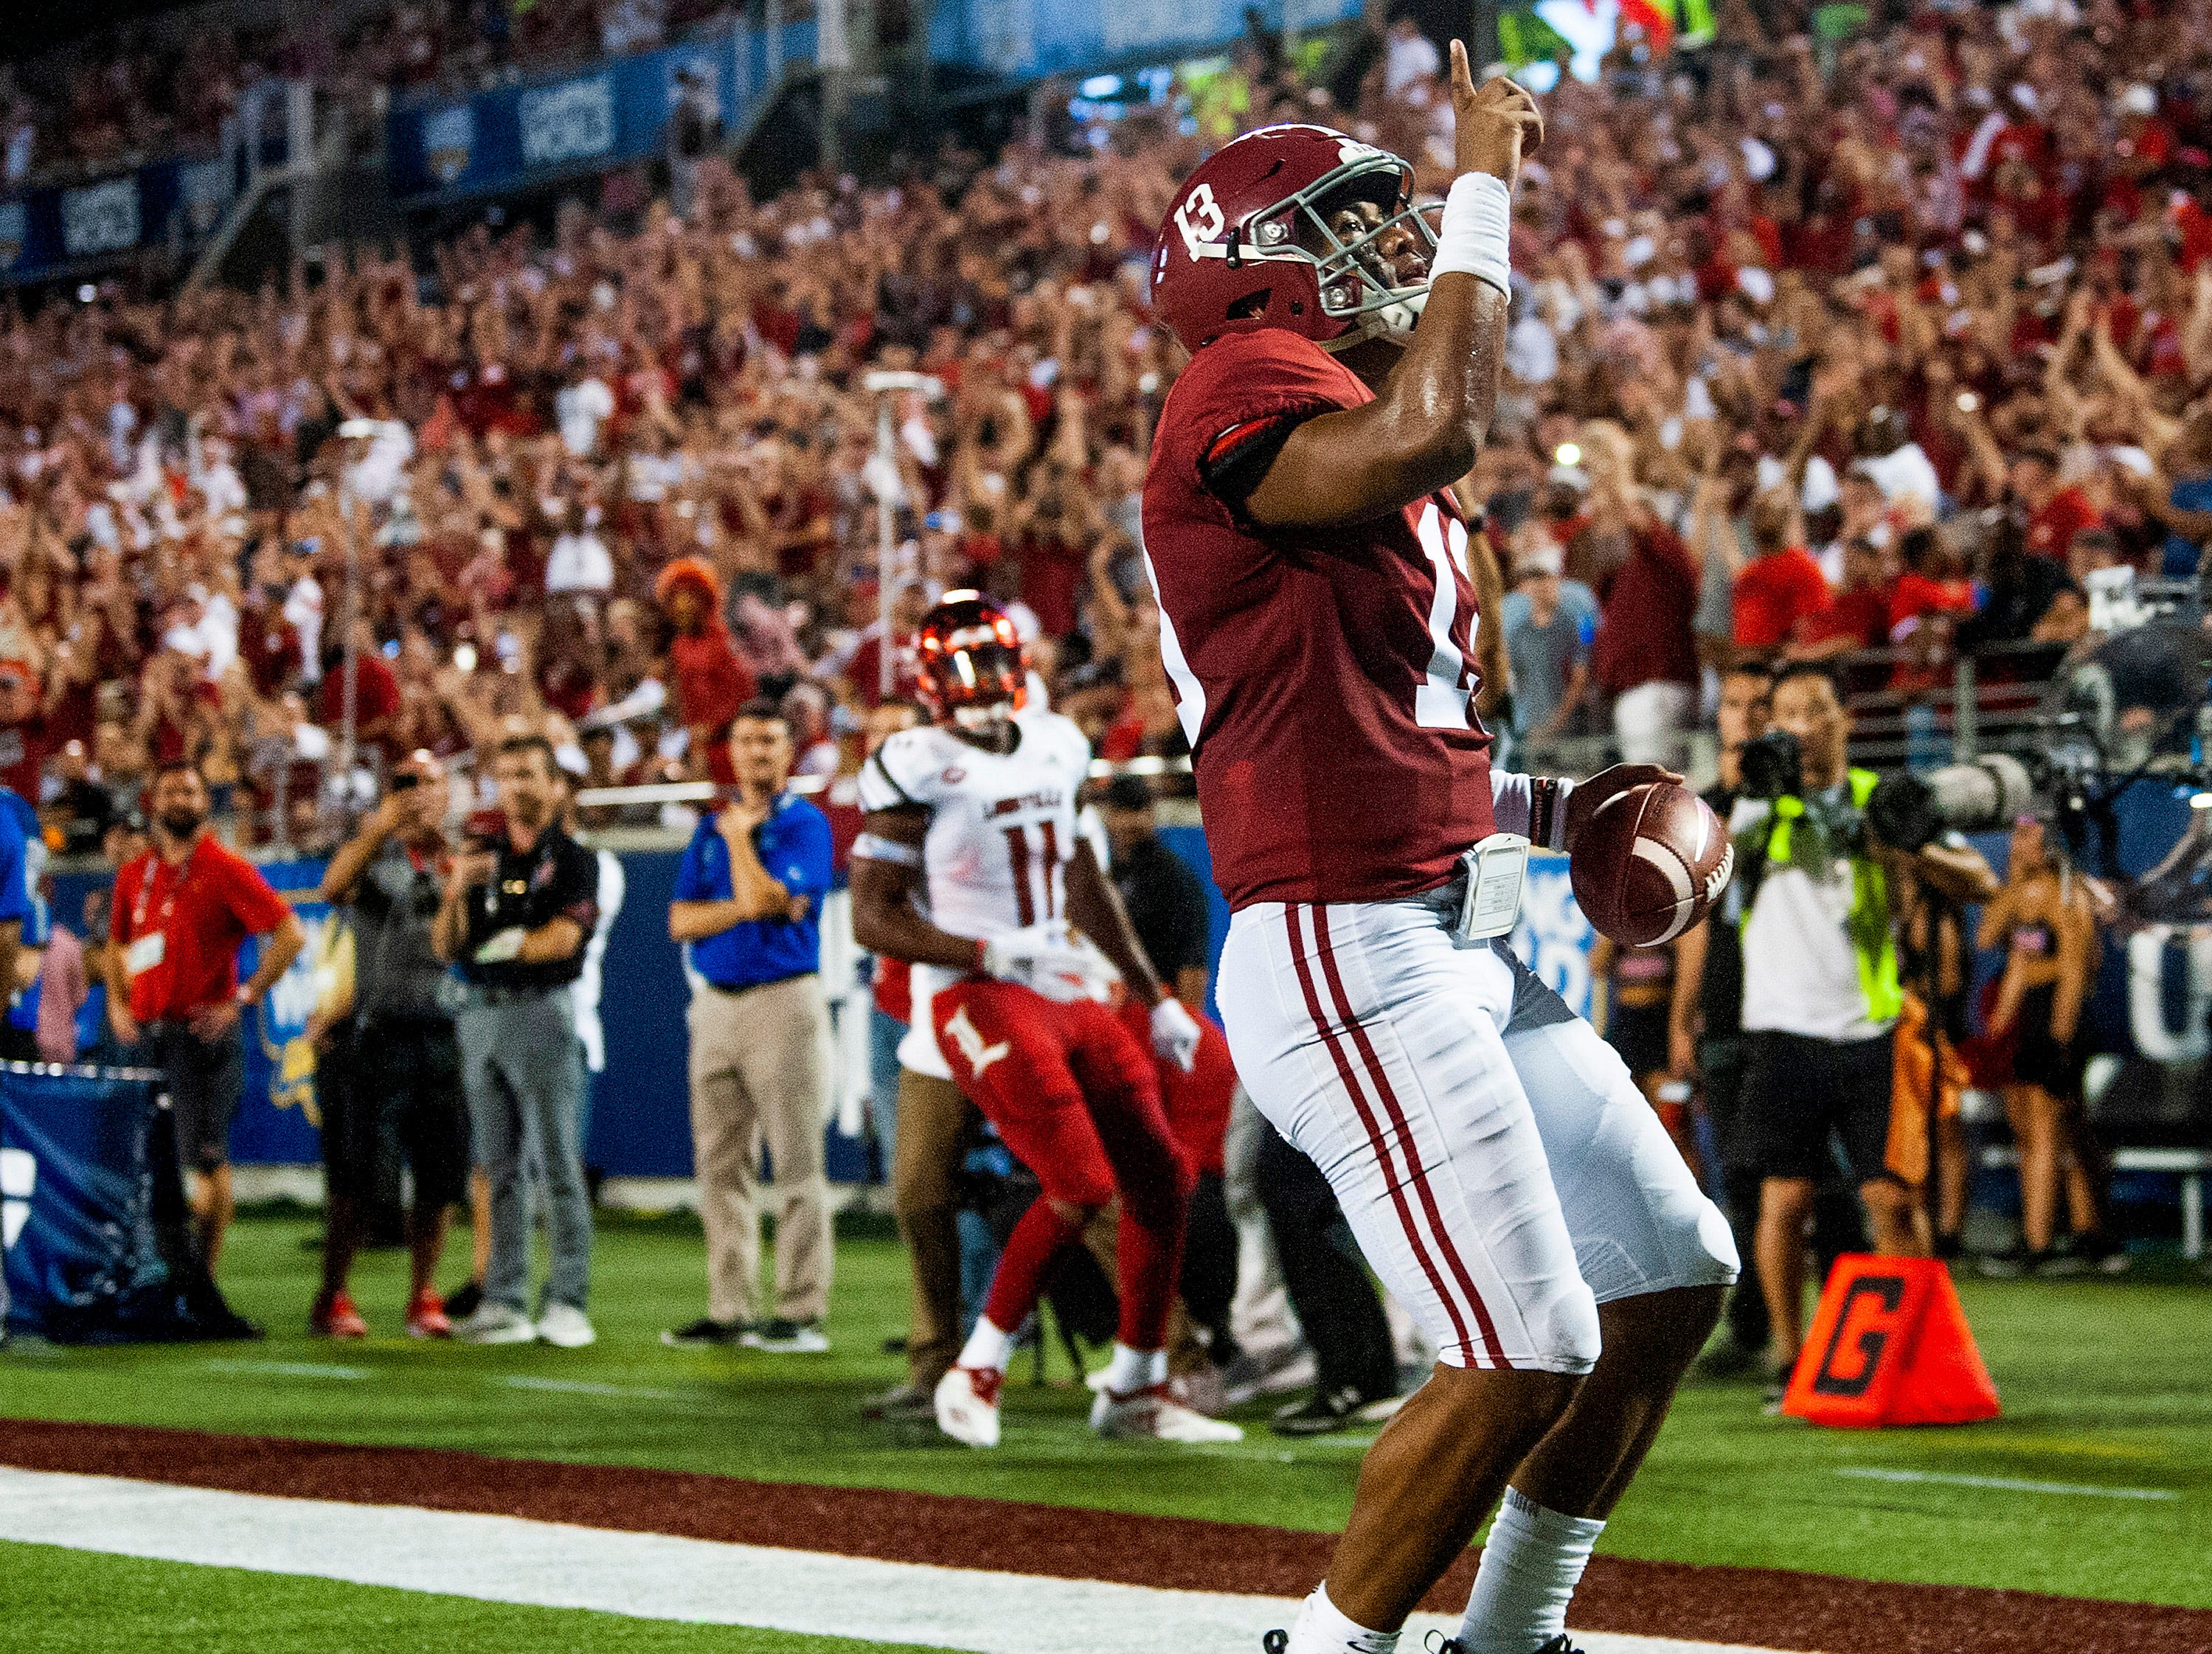 Alabama quarterback Tua Tagovailoa (13) after scoring a touchdown against Louisville In first half action of the Camping World Kickoff at Camping World Stadium in Orlando, Fla., on Saturday September 1, 2018.